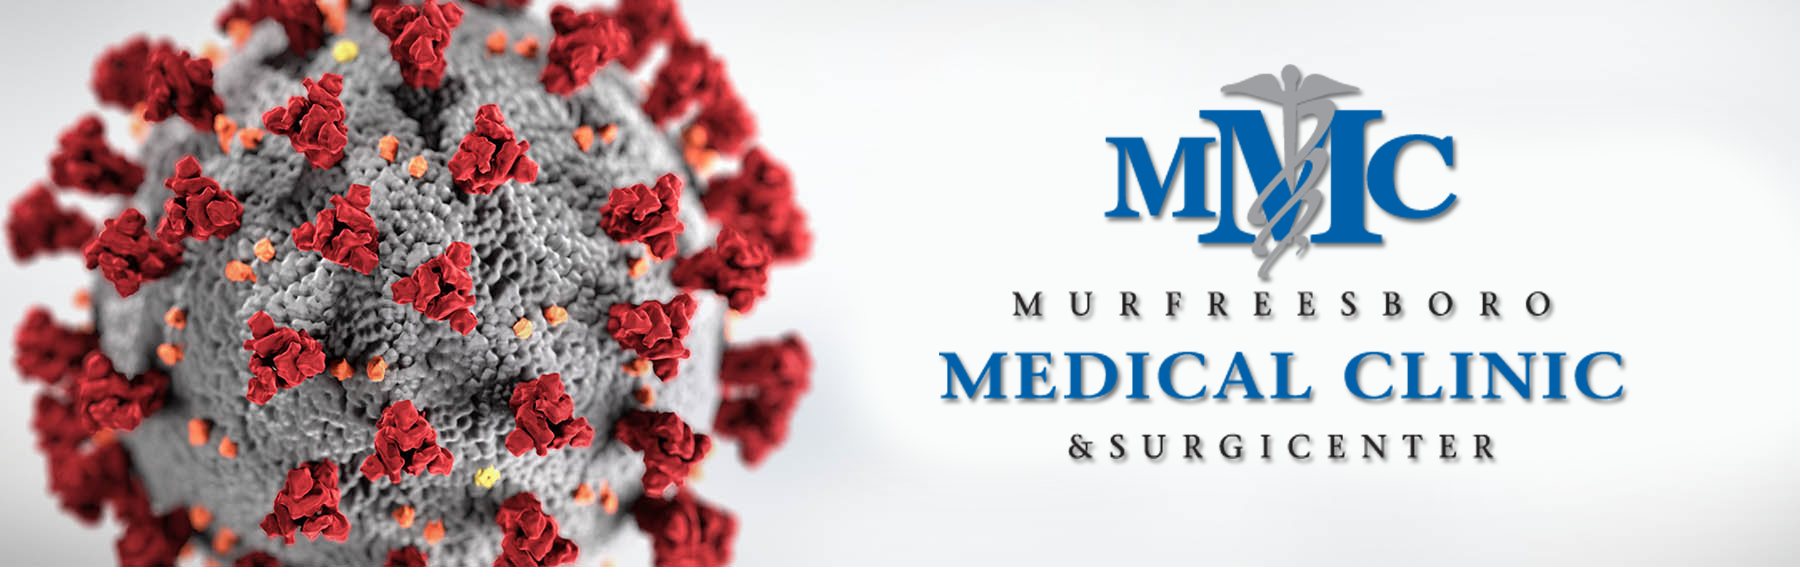 Murfreesboro Medical Clinic announces Appointment Testing for COVID-19 Starting Monday